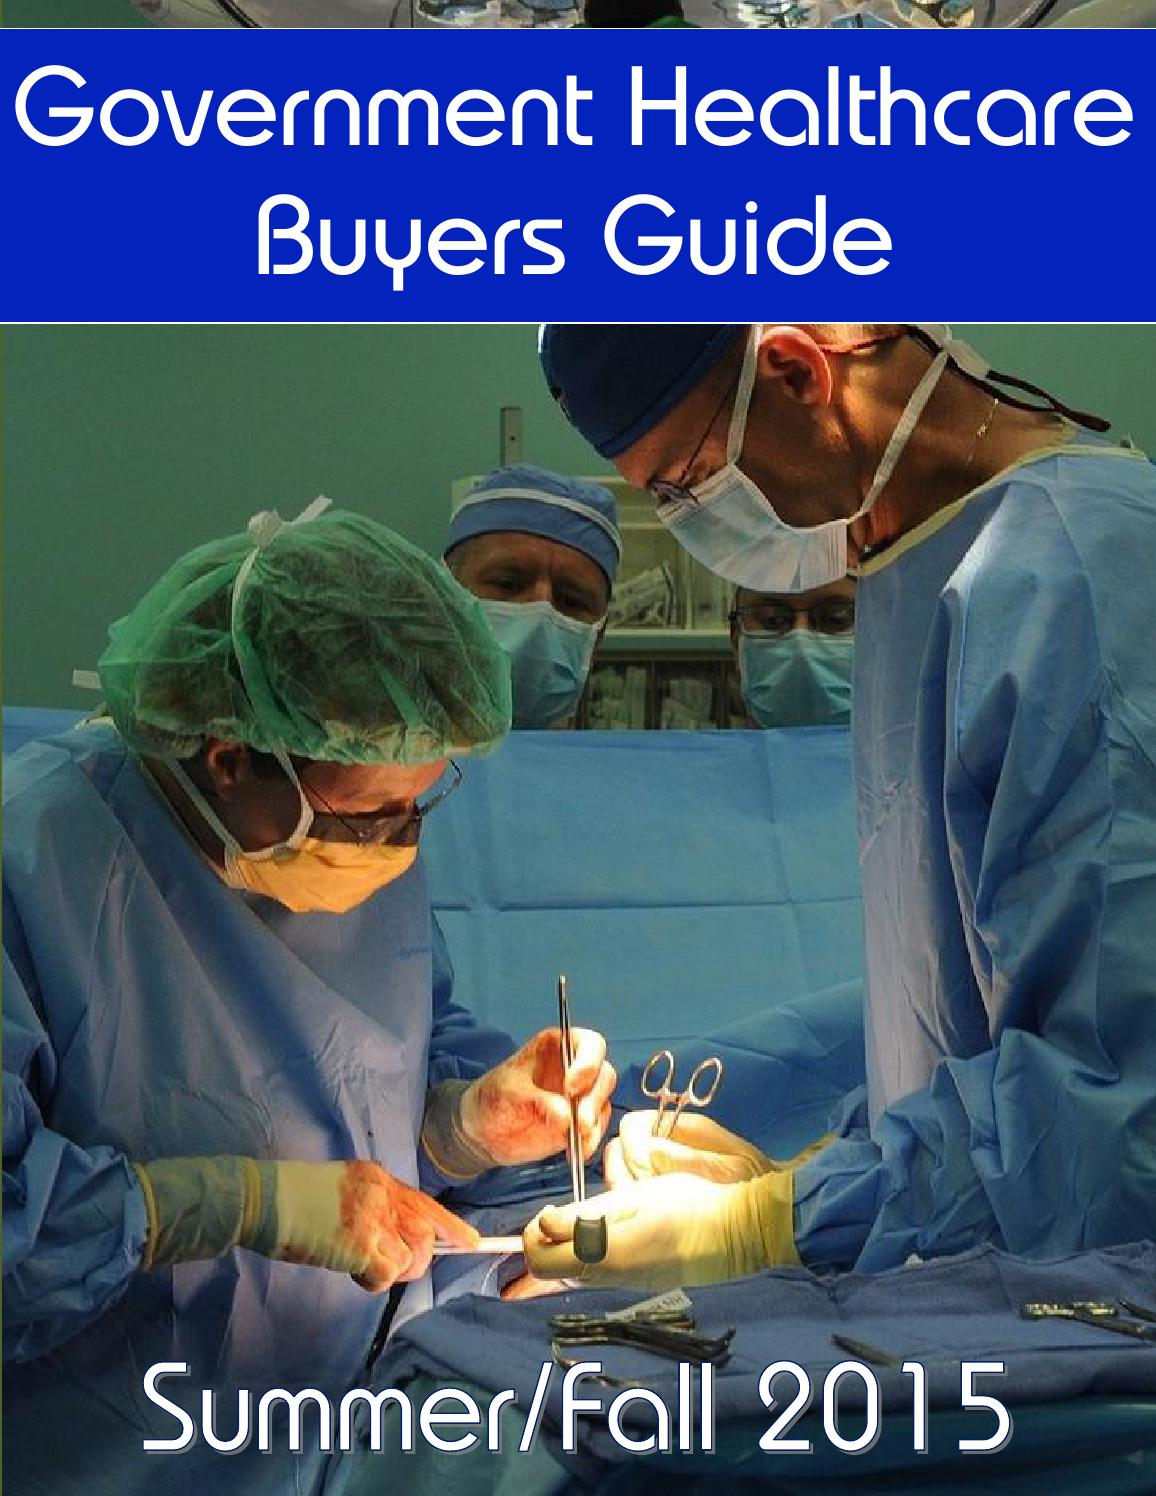 Tracking report sample 6 97 not on networx telsys george not trained - Government Healthcare Buyers Guide By Federal Buyers Guide Inc Issuu